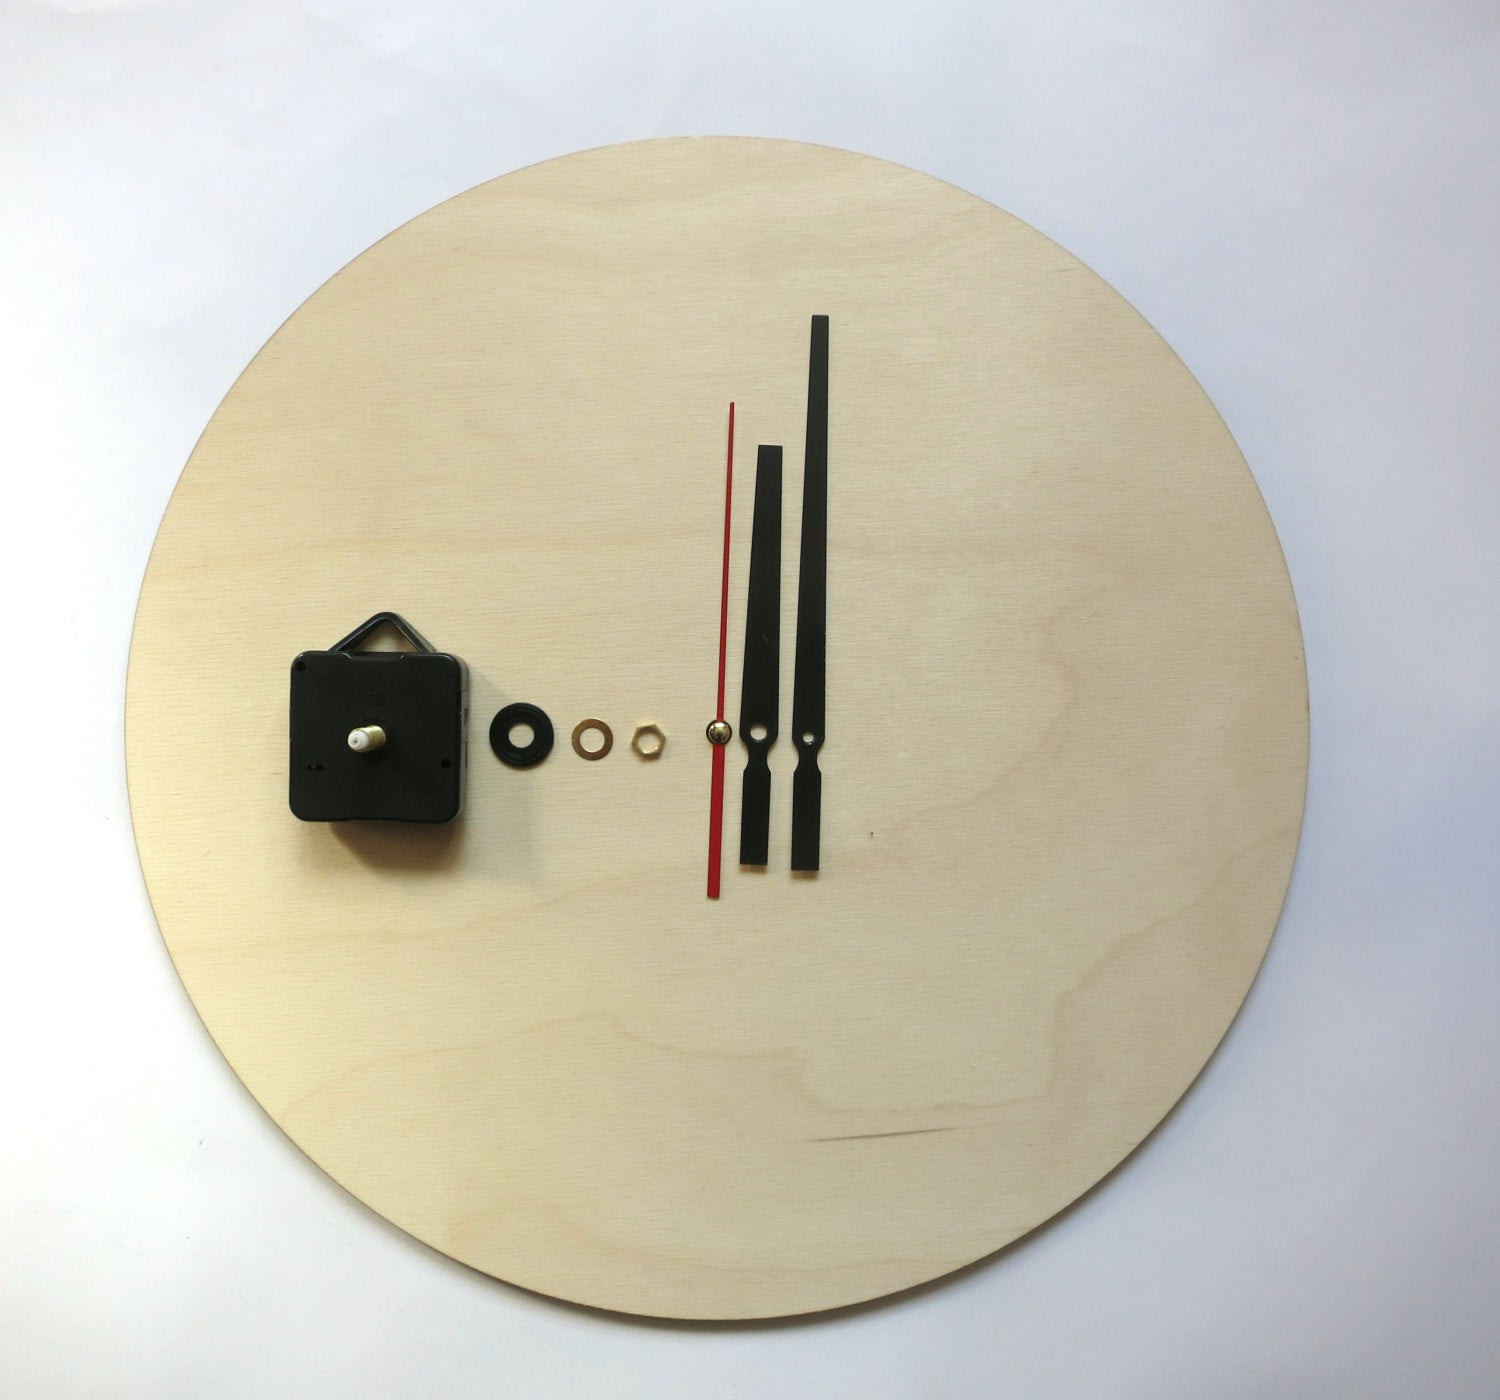 Best ideas about DIY Clock Kit . Save or Pin Clock kit DIY Wall clock kit 16 40cm diy clock wood Now.